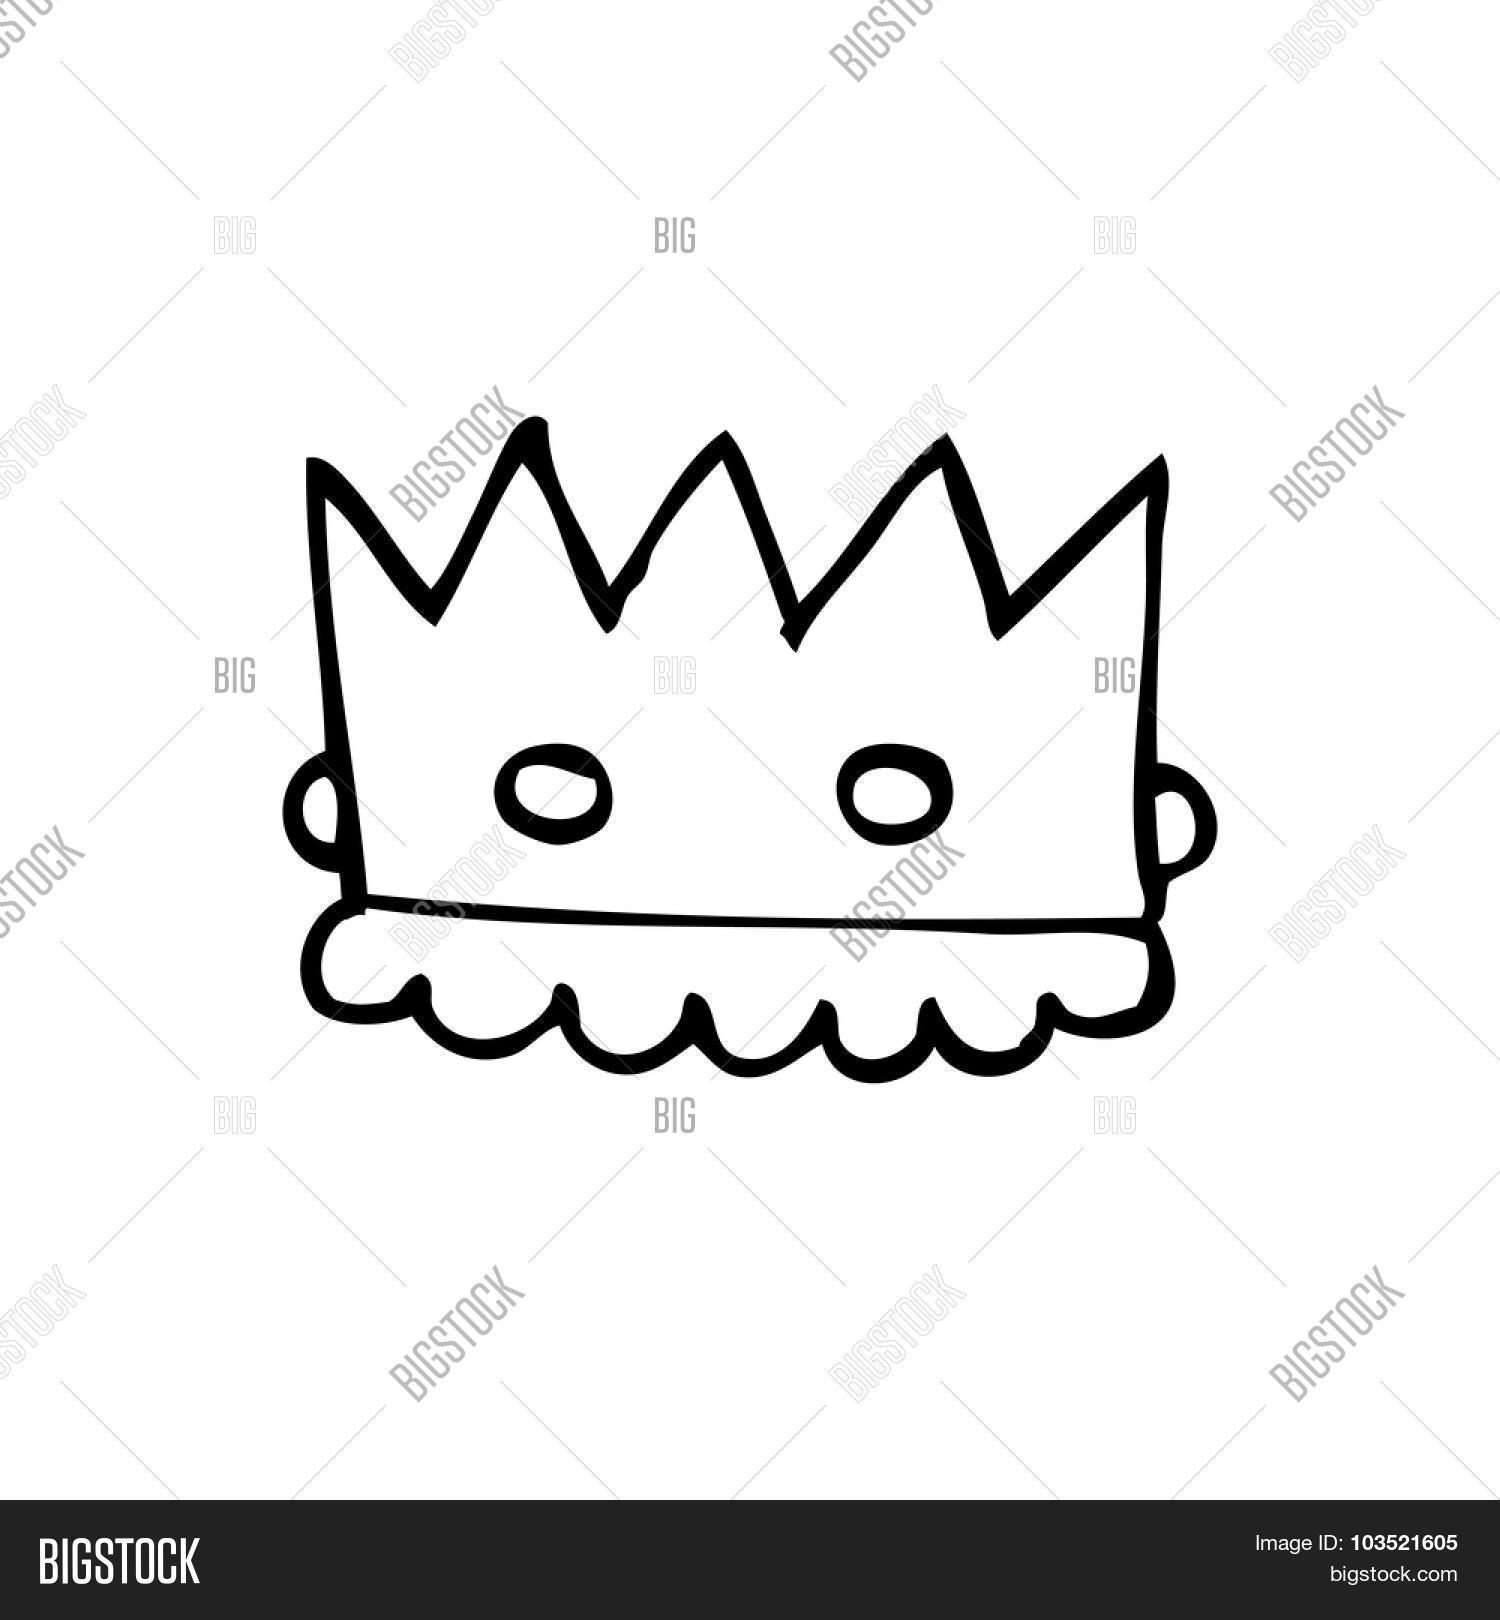 Simple Black White Vector Photo Free Trial Bigstock Are you looking for crown black design images templates psd or png vectors files? simple black white vector photo free